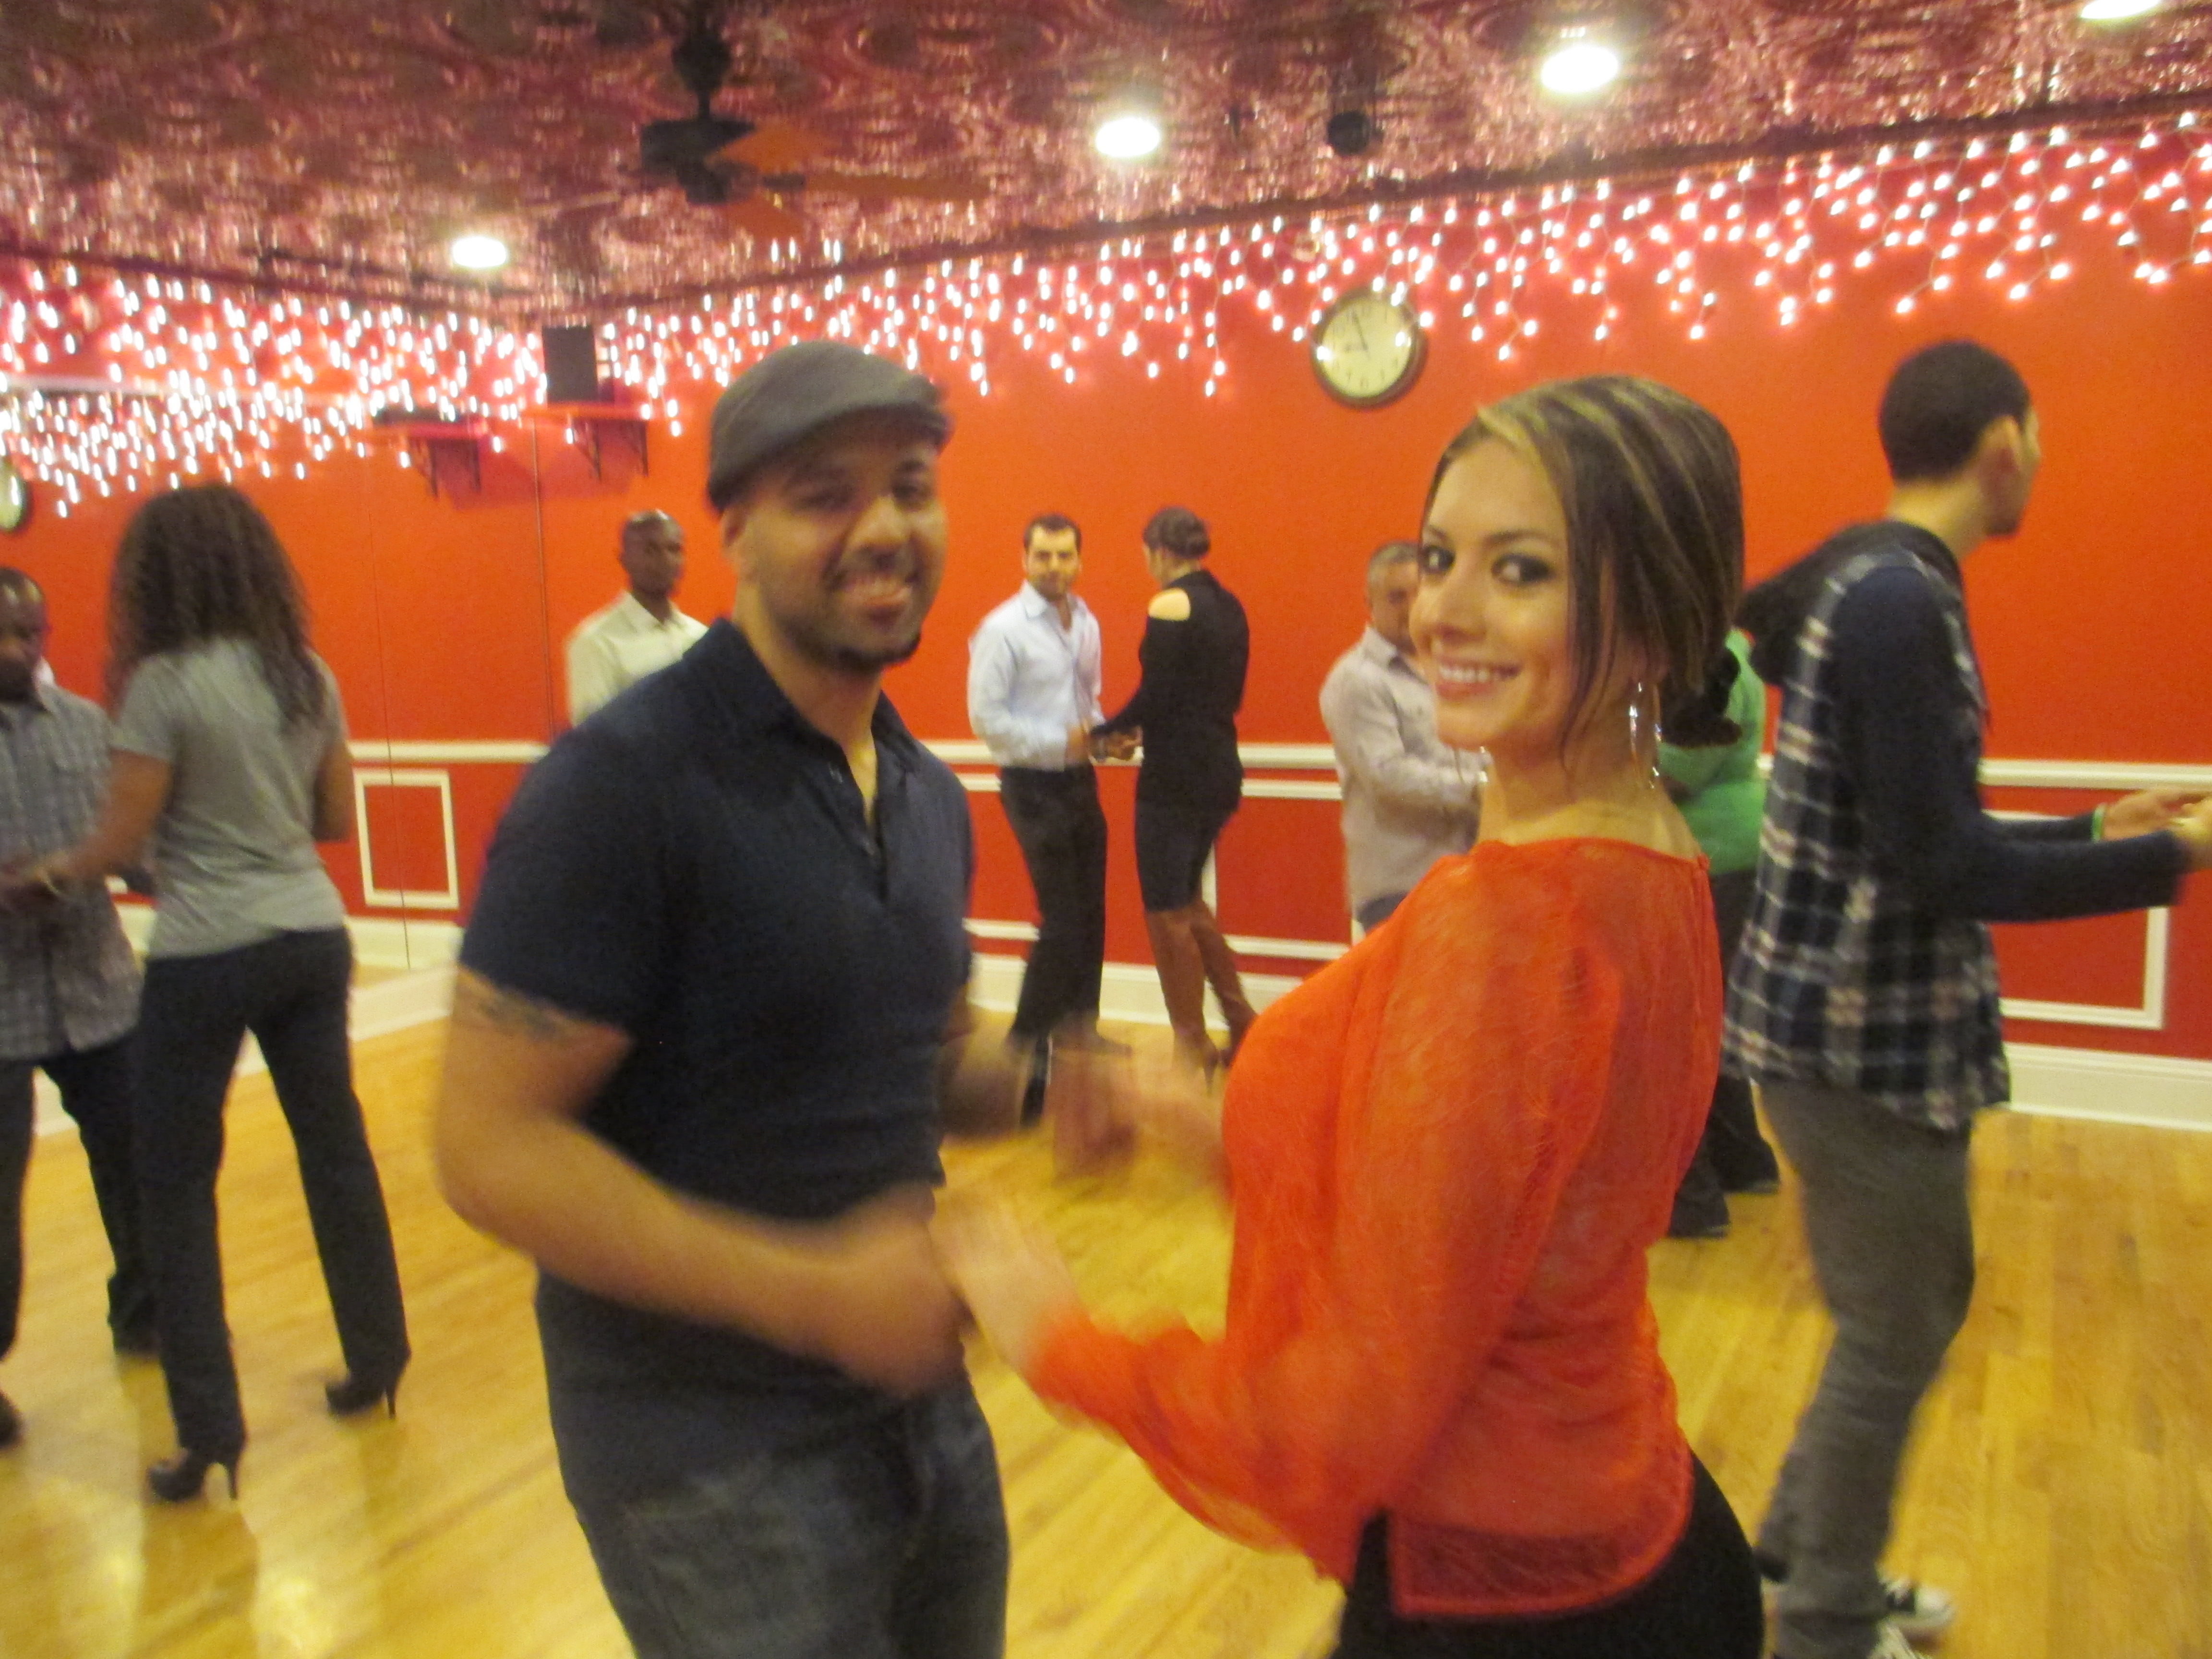 Salsa Dance Classes NYC for FREE